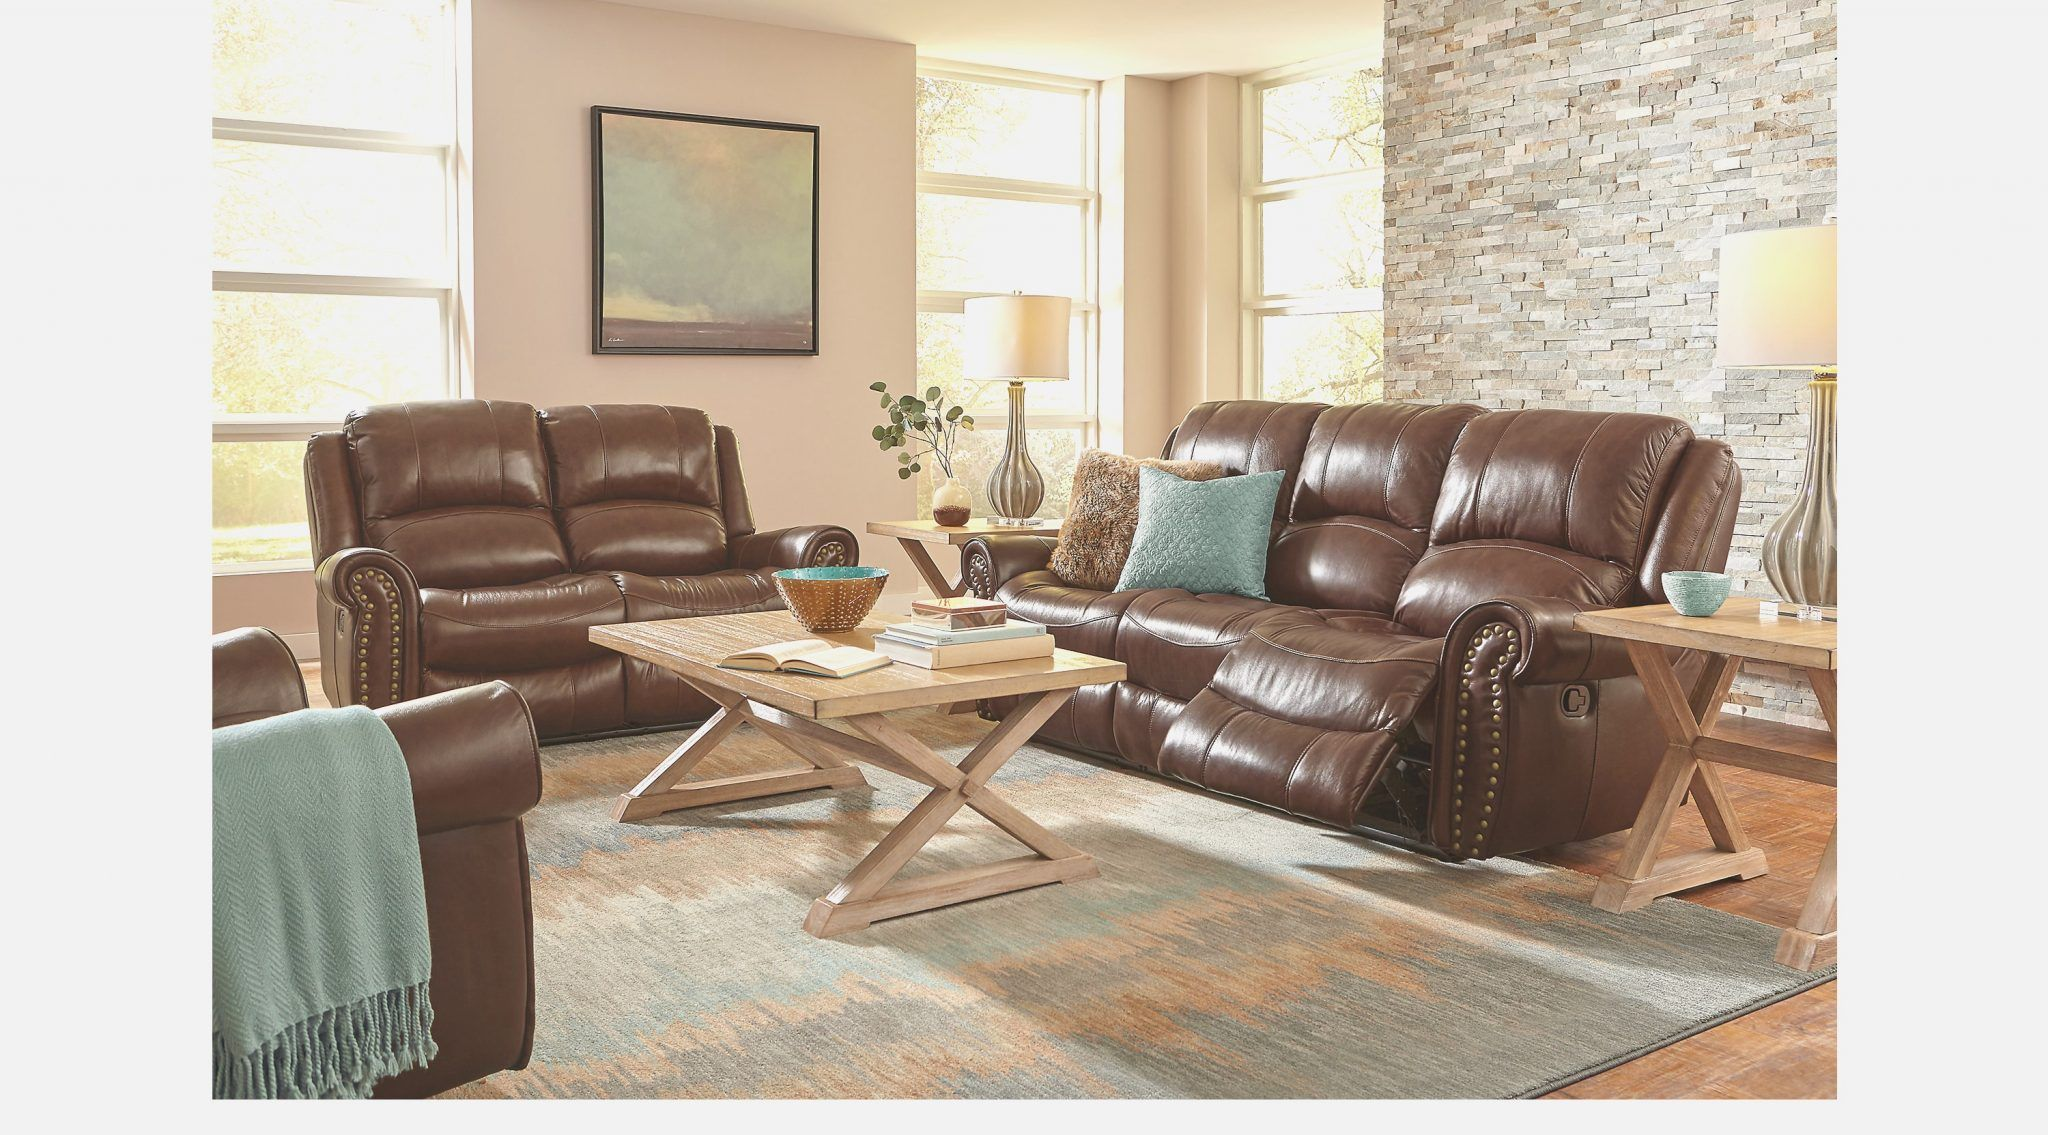 Brown Leather Living Room Sets   Brown Leather Furniture Living Room Decor,  Brown Leather Furniture Living Room Ideas, Brown Leather Living Room  Furniture, ...